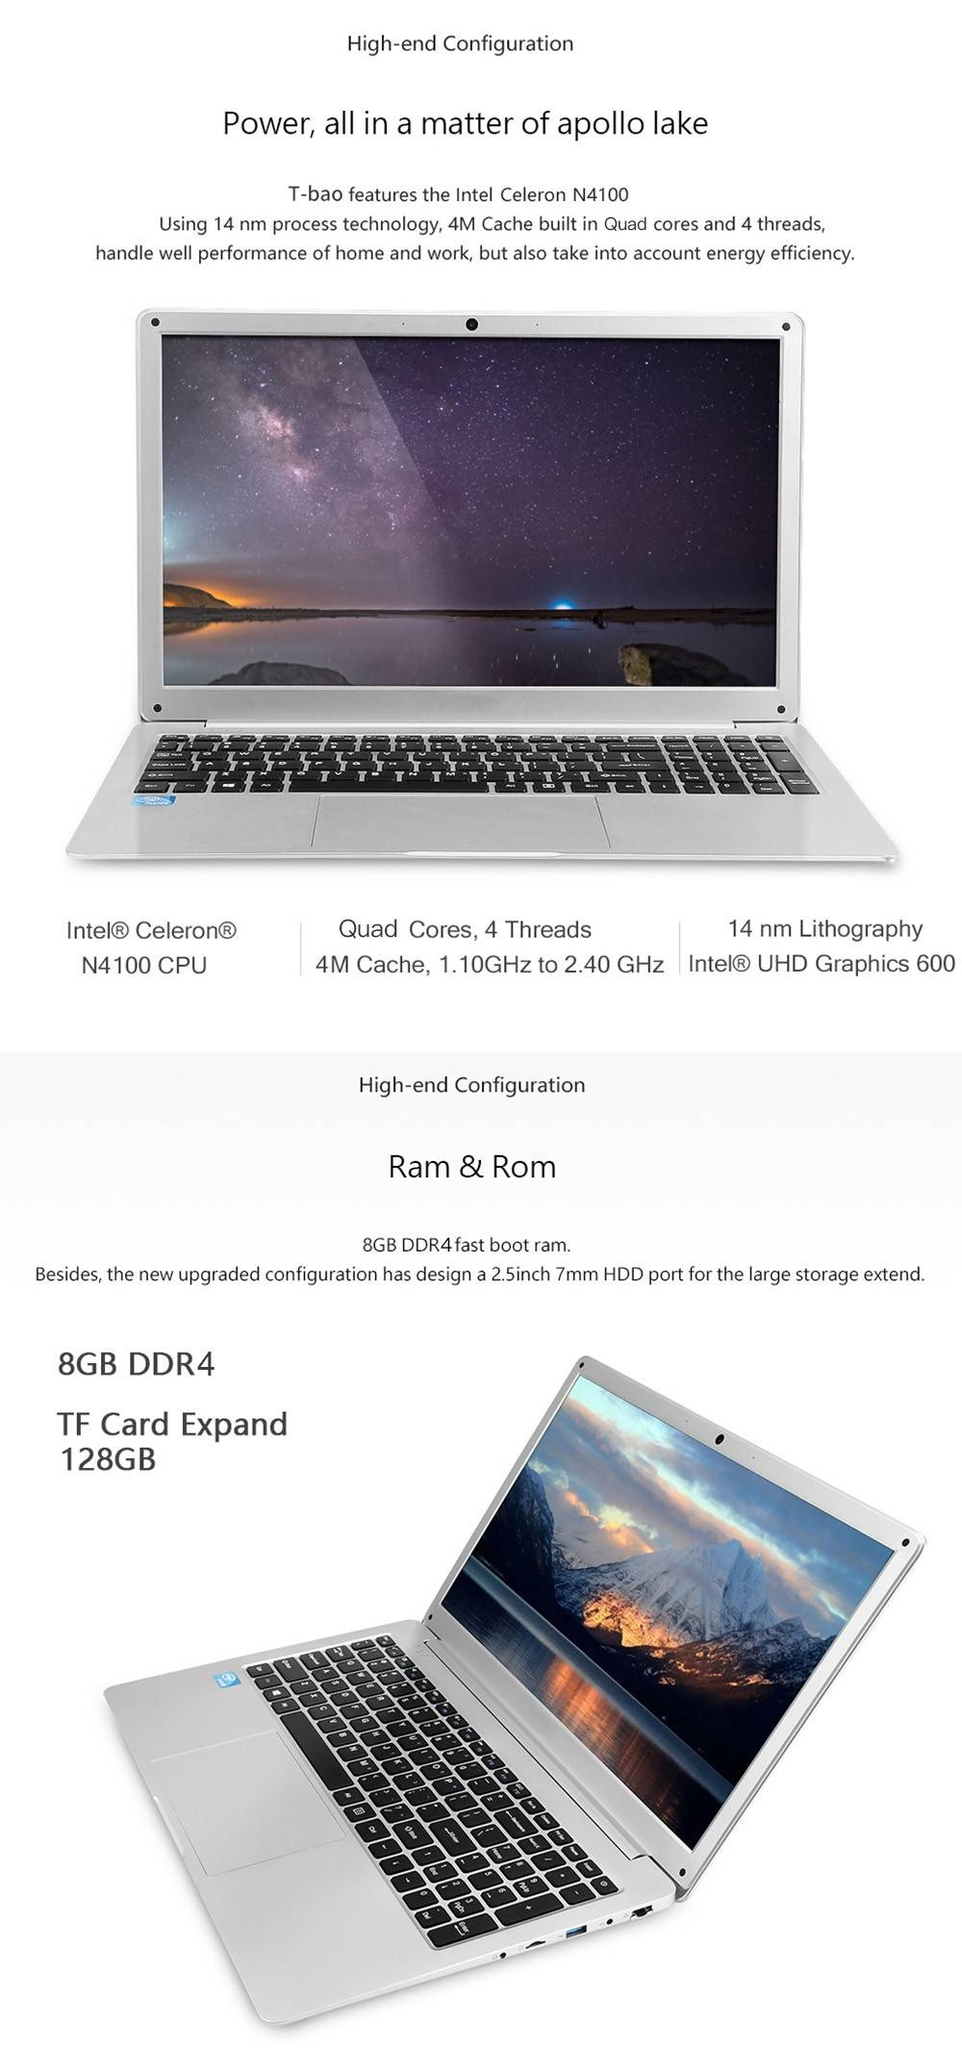 T-bao X8 Plus Laptop 15.6 inch Windows 10 English Version Intel Celeron N4100 Quad Core 1.1GHz 8GB RAM DDR4 128GB SSD HDMI 0.3MP Front Camera